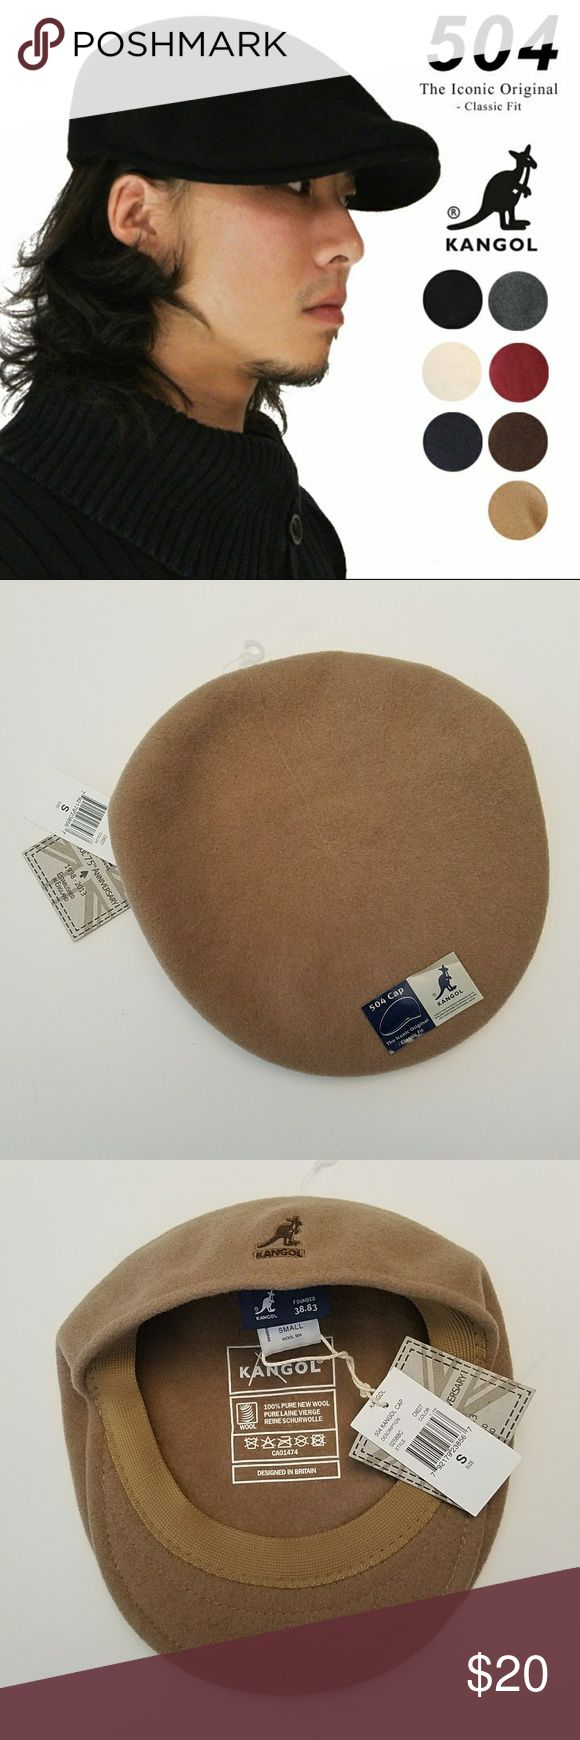 Kangol Wool 504 Cap, light brown/tan, size Small The Wool 504 is the iconic, original Kangol Cap. First introduced in 1954, the 504 cap gets its name from the block number that it is made on. The 100% seamless wool cap is the ultimate cap for comfort & style. Never worn. NWT From smoke-free home Kangol Accessories Hats